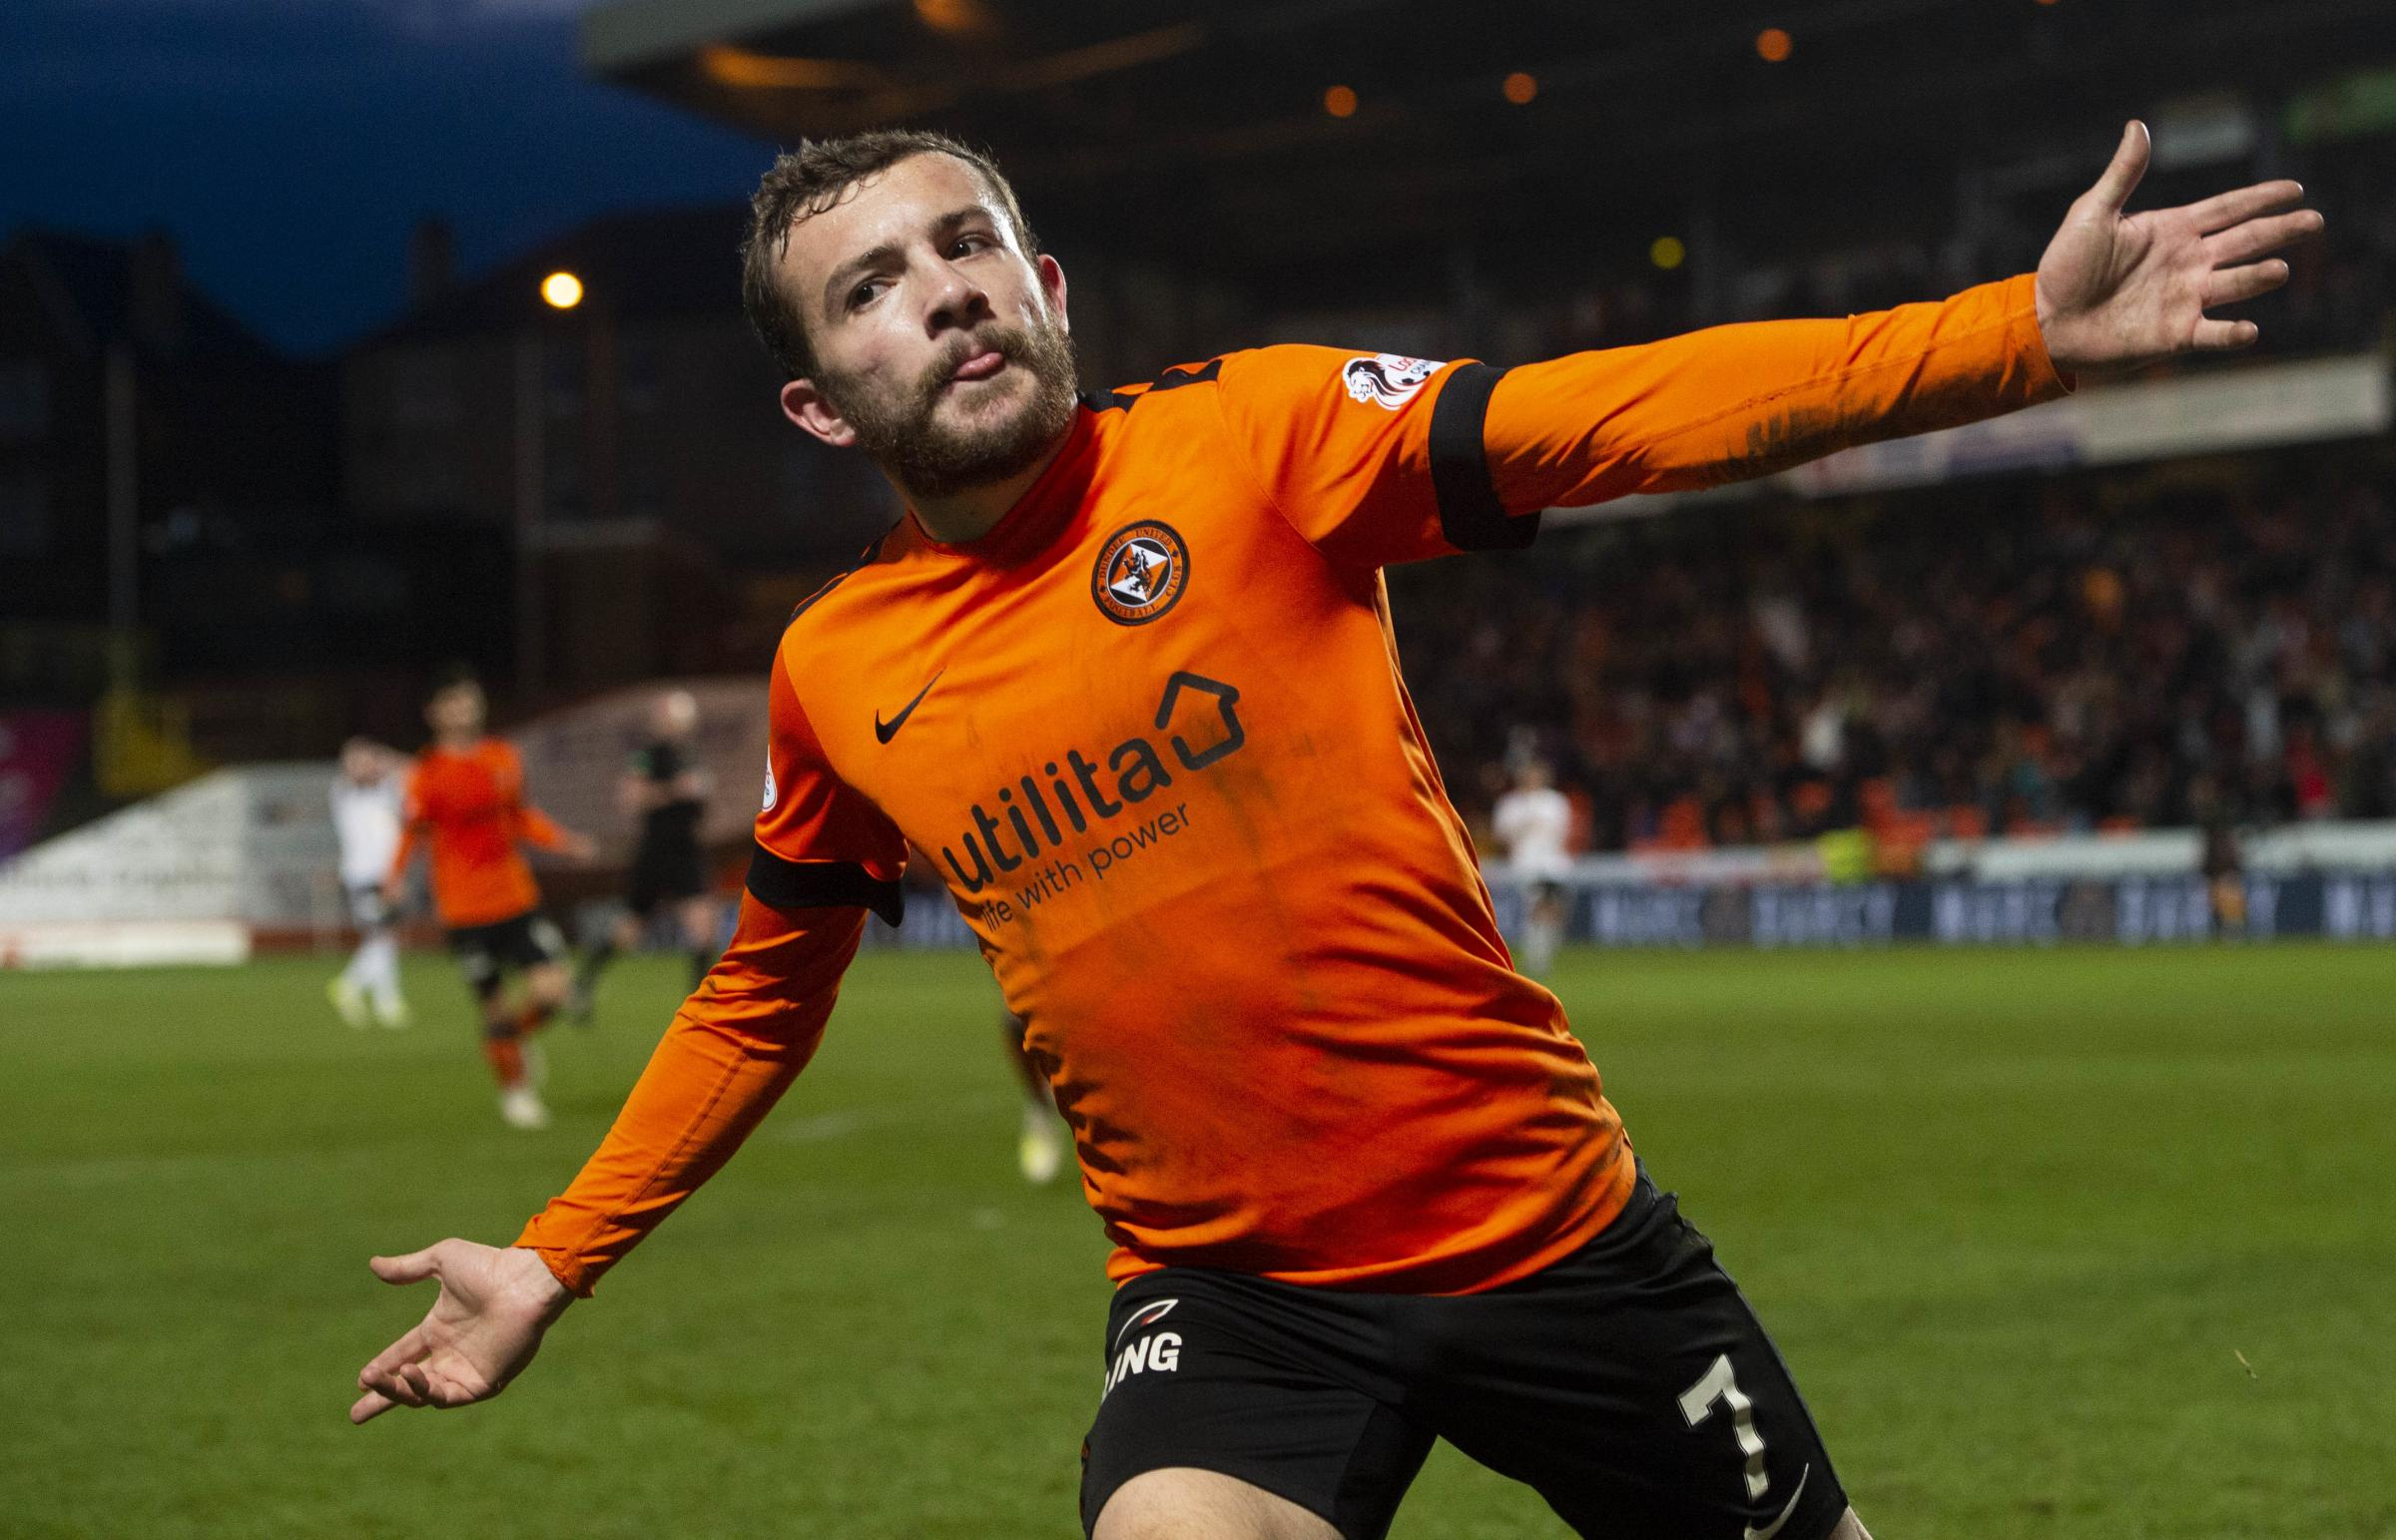 Dundee United's Paul McMullan celebrates his goal to make it 2-1